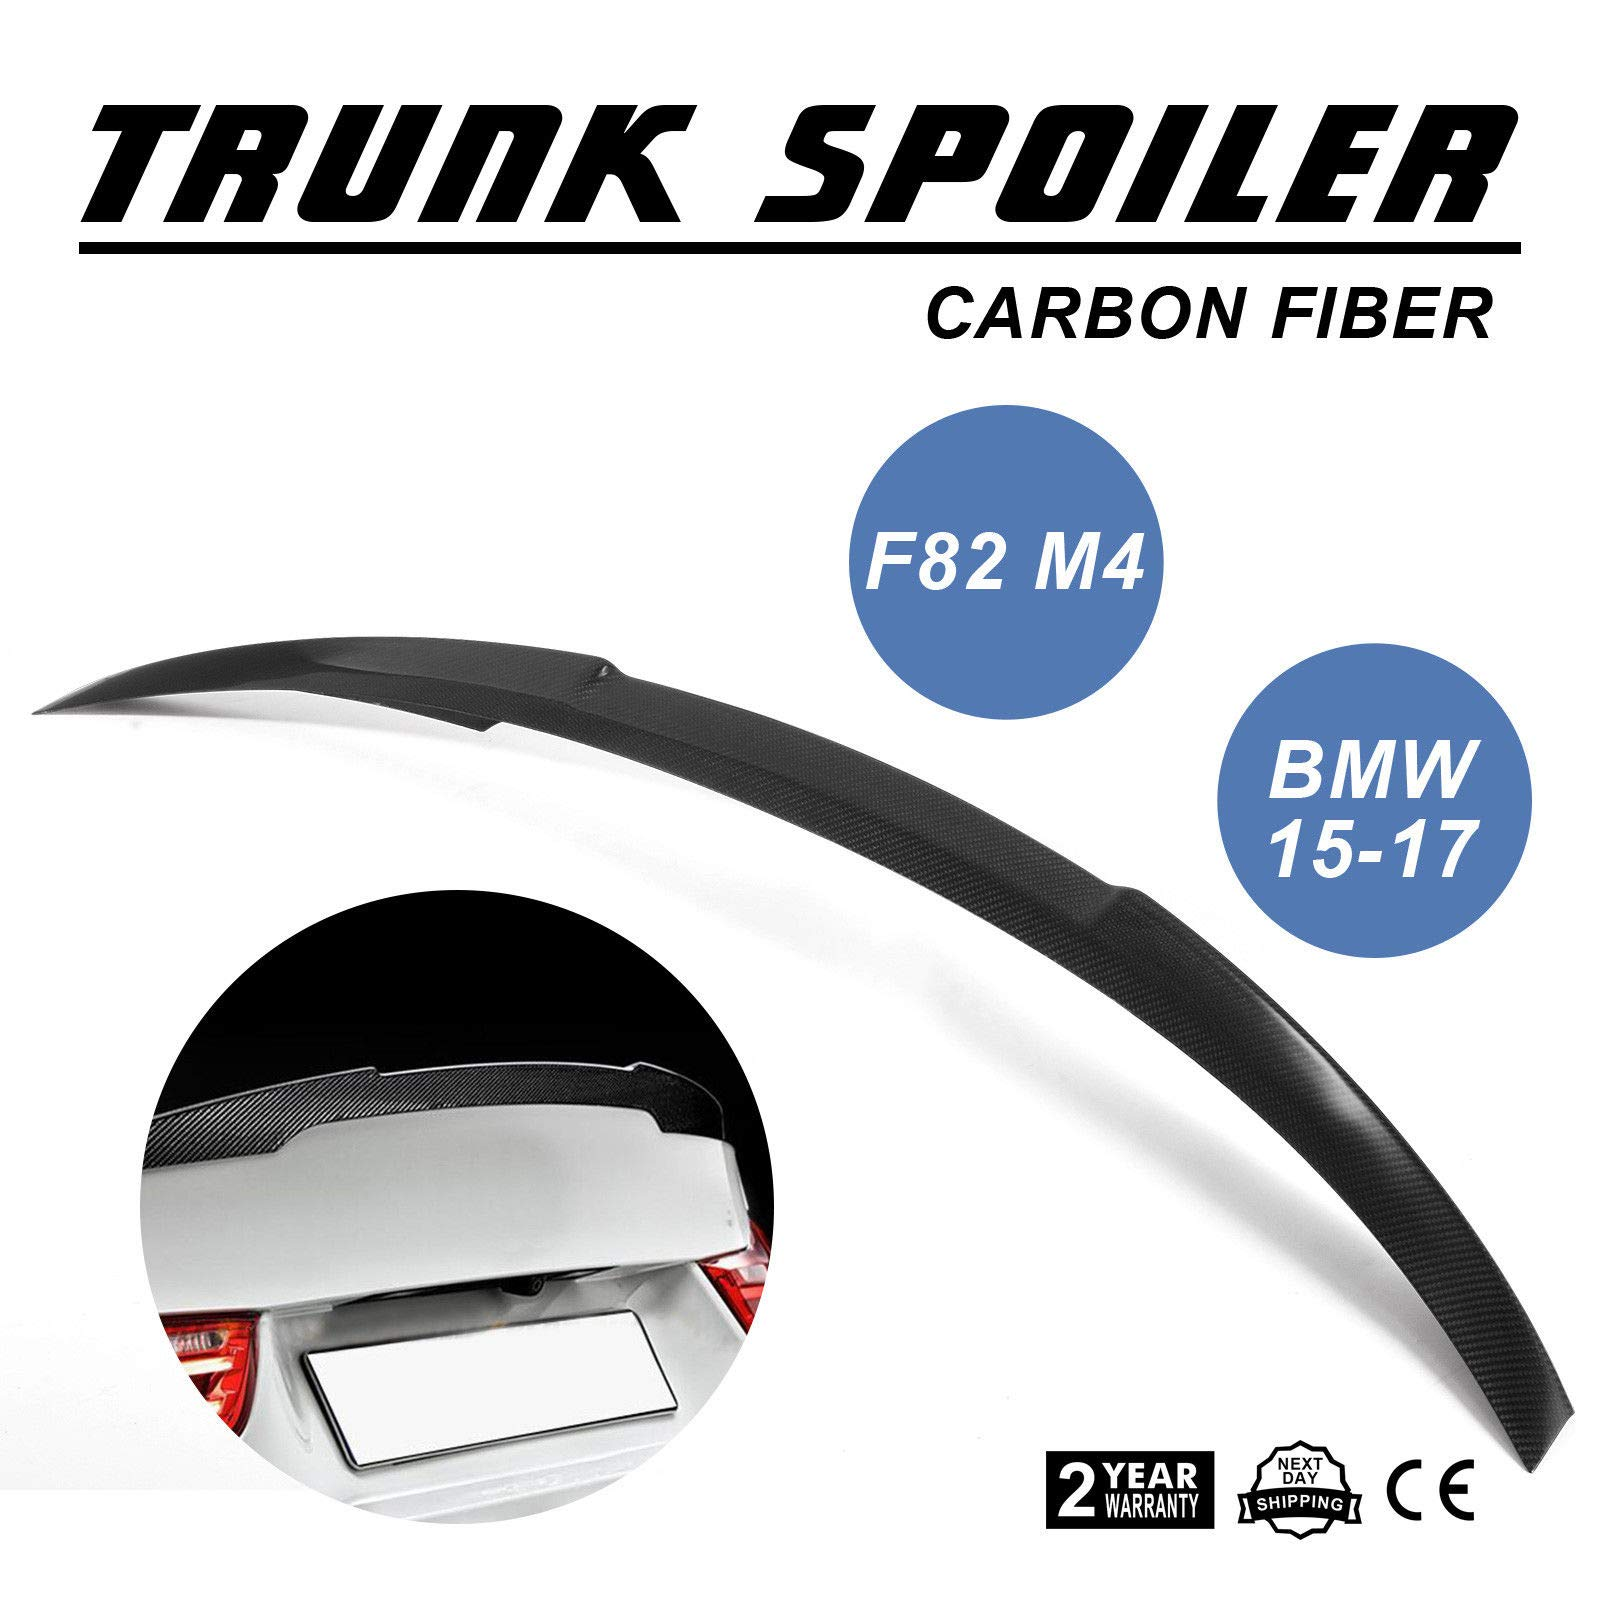 Mophorn Carbon Fiber Rear Trunk Lip Spoiler Wing For BMW 3-Series F30 4DR Performance Style Carbon Fiber Trunk Spoiler Rear Spoiler Wing 320i 328i 335i 340i